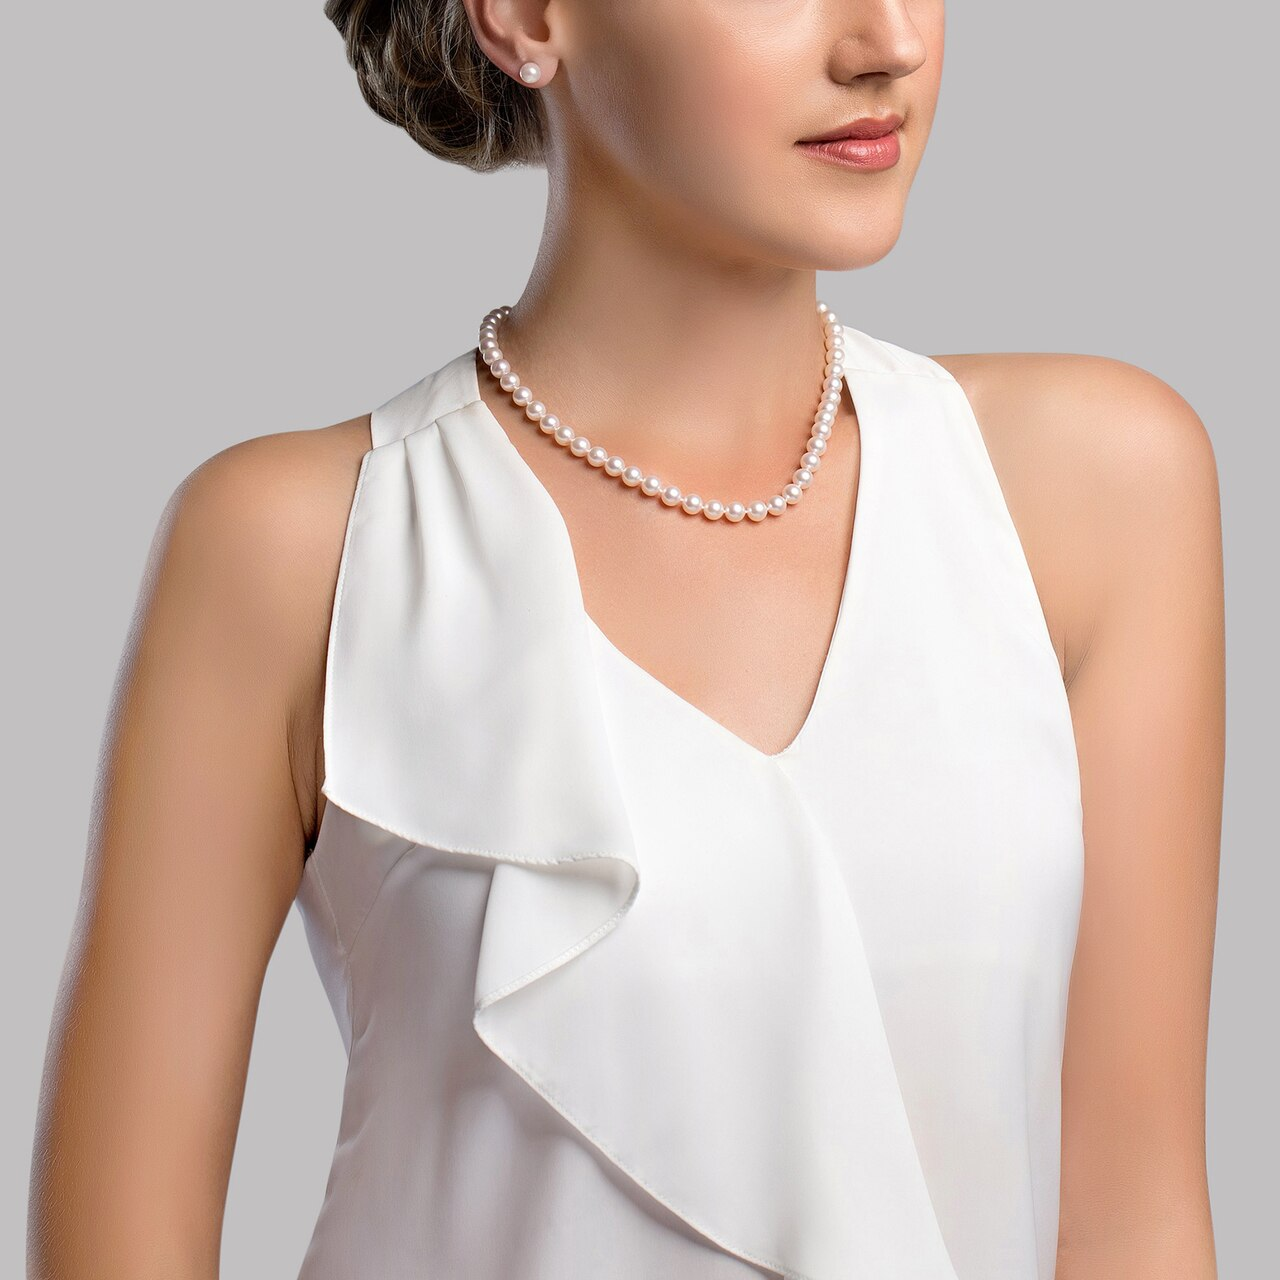 This elegant necklace features 7.0-7.5mm Hanadama Akoya pearls, handpicked for their luminous luster